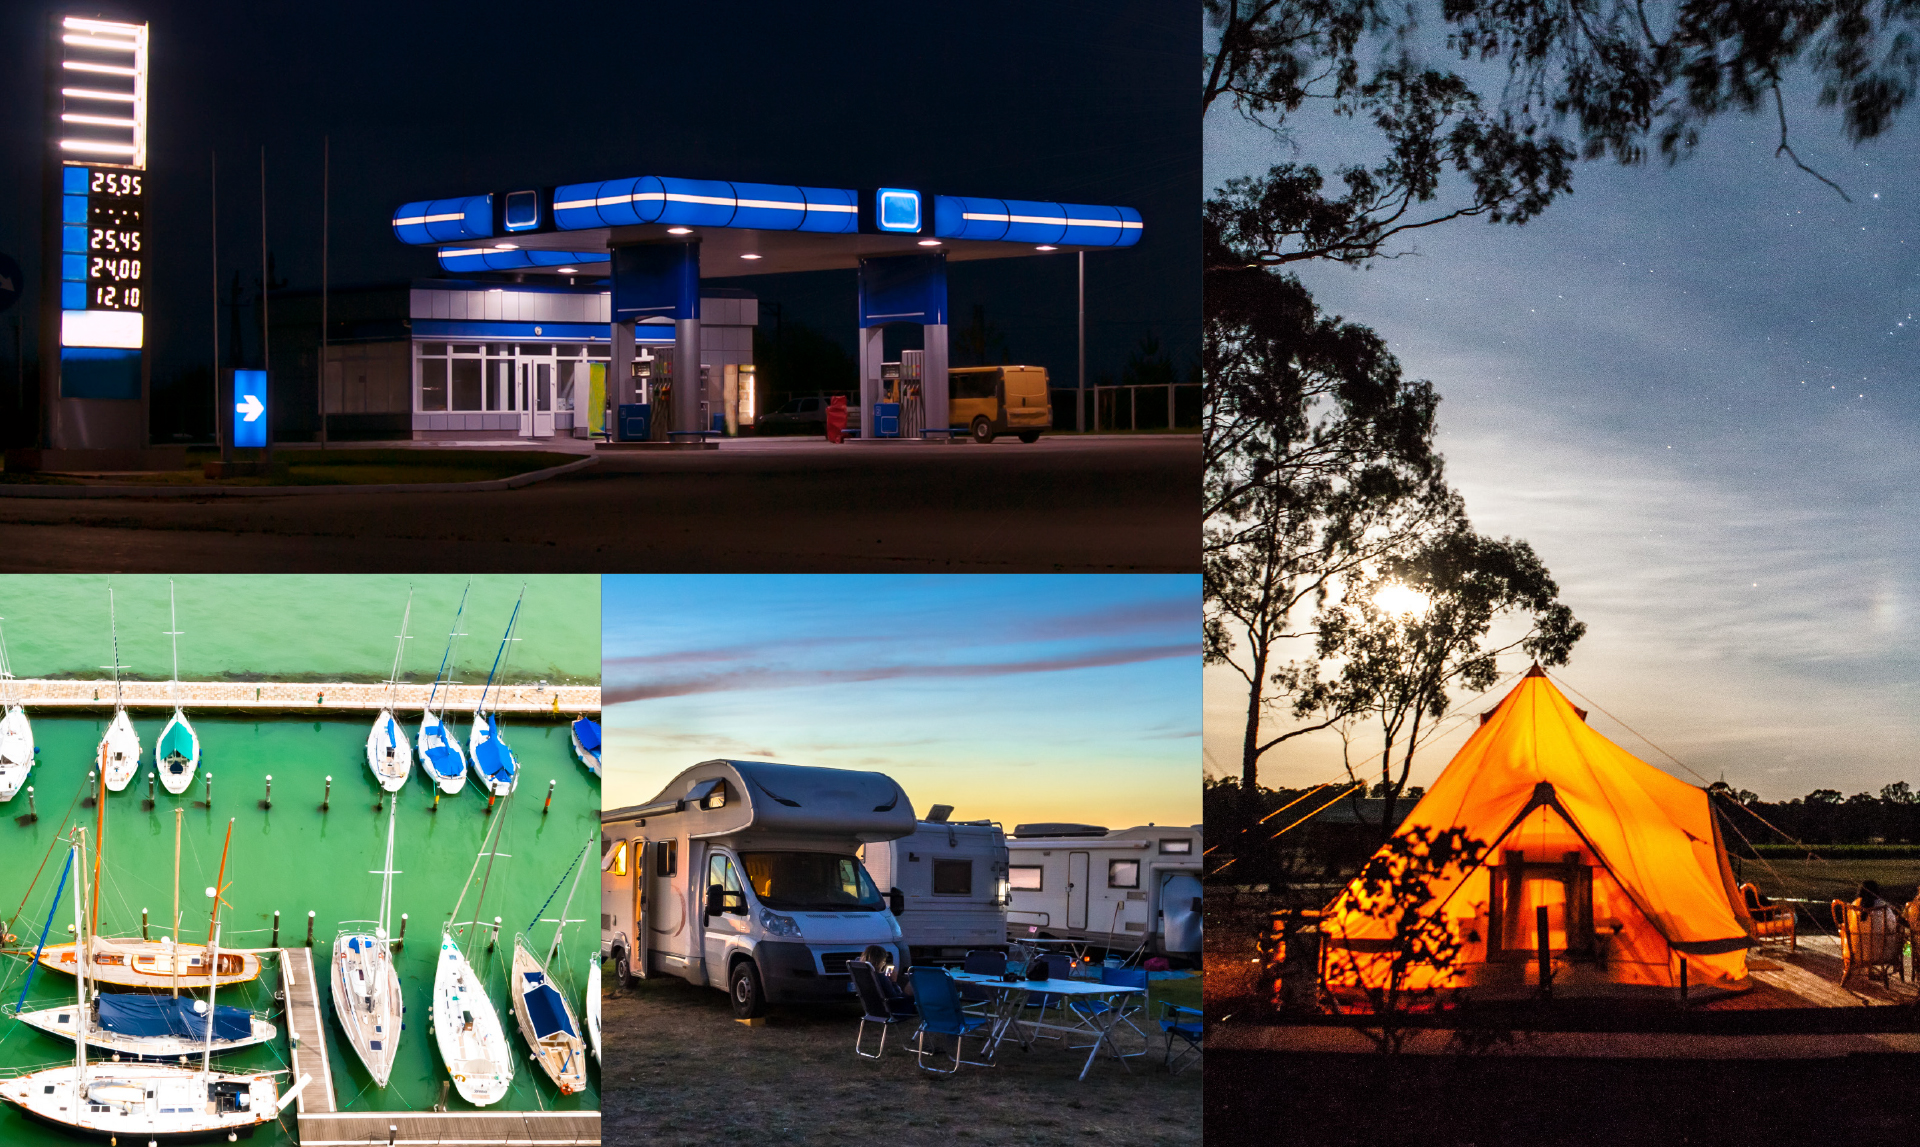 Propelair toilet is ideal for offgrid sites like camping grounds & petrol stations